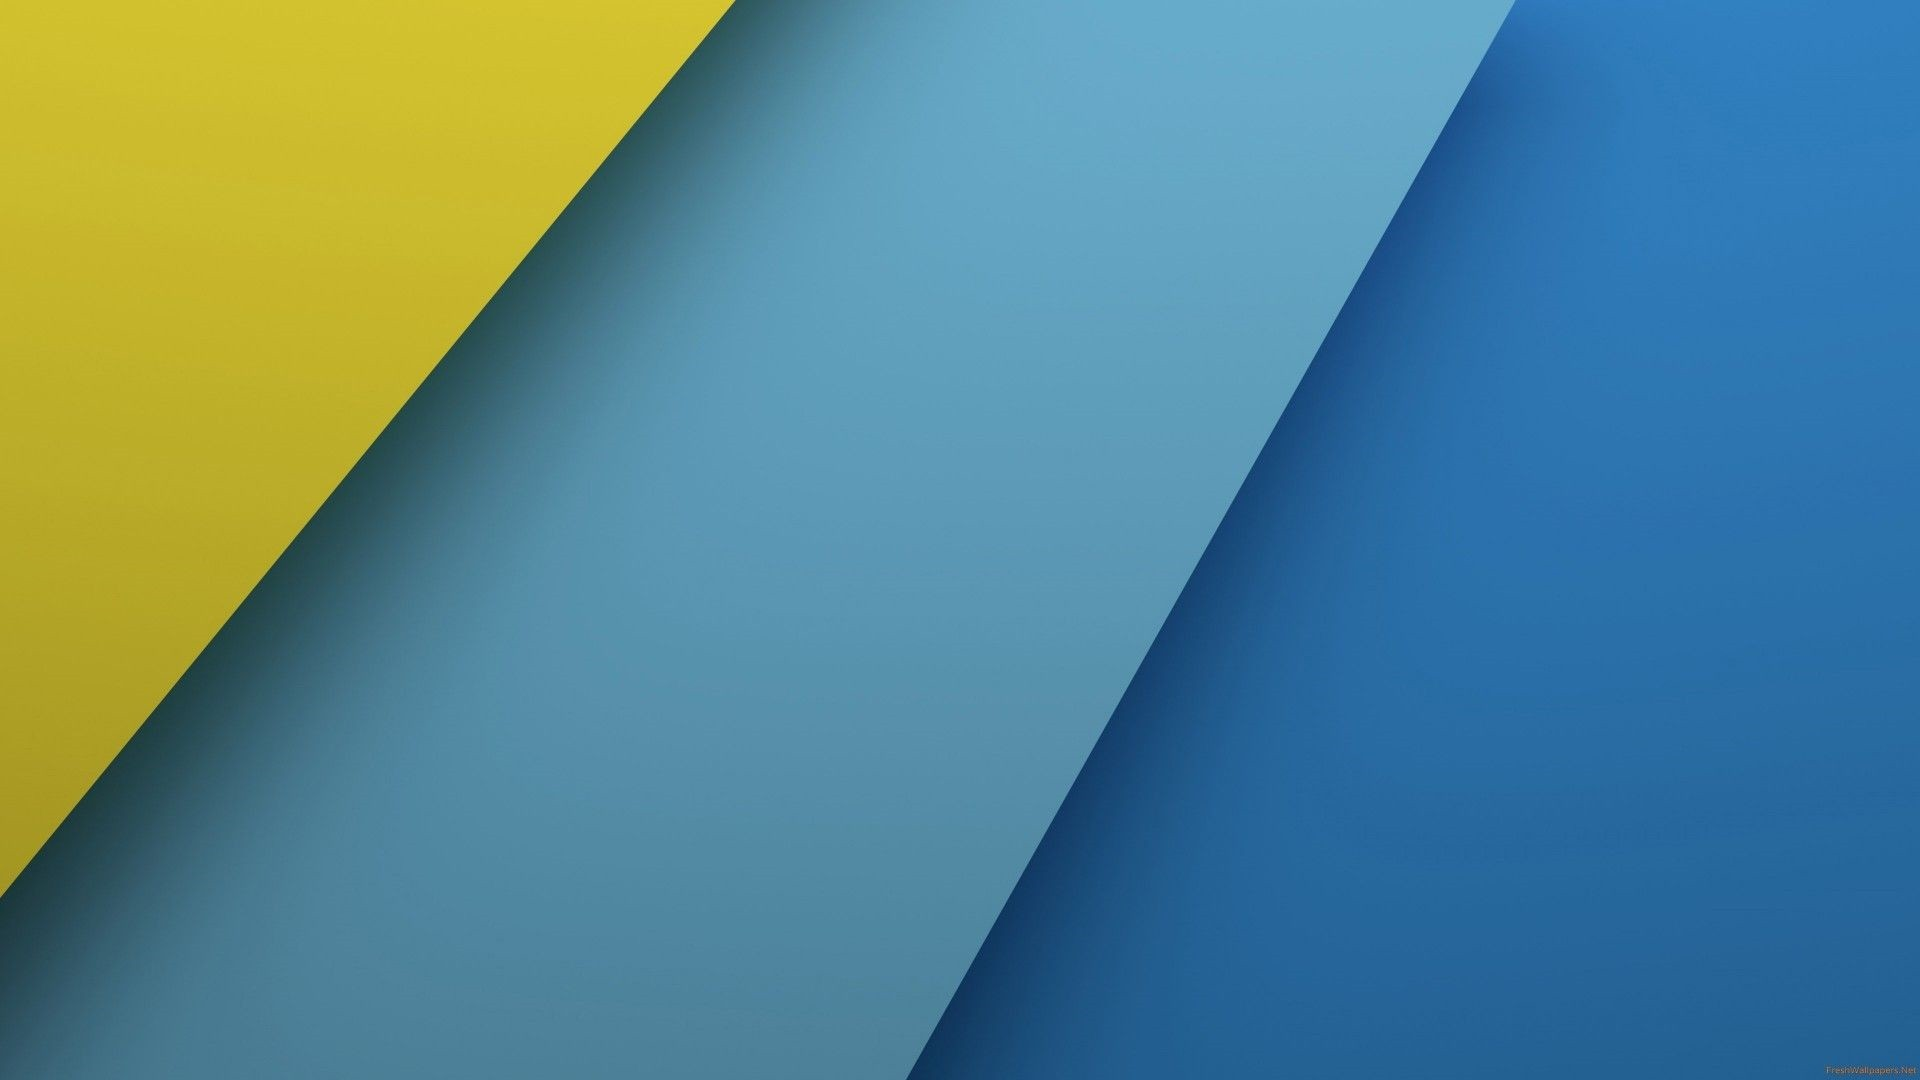 Blue And Yellow Download Wallpaper